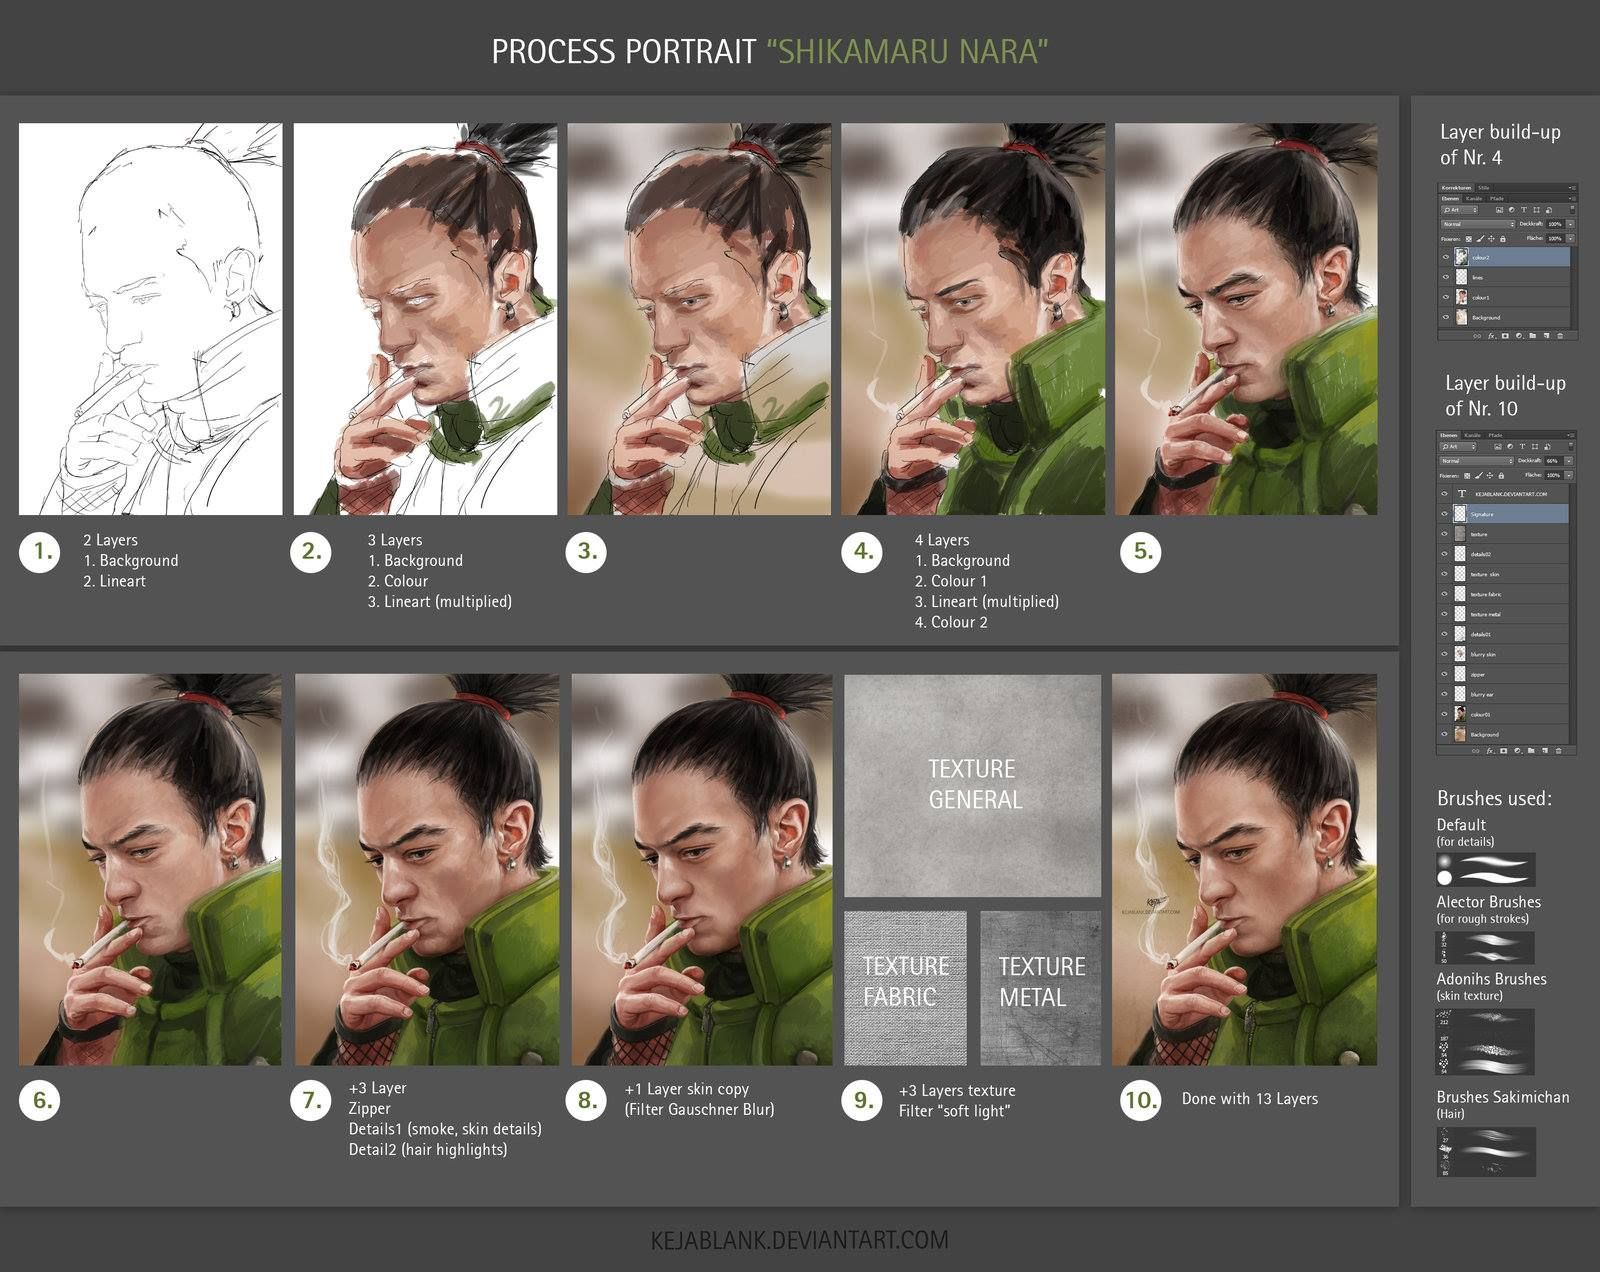 """This walk-through is quick, but detailed, with notes and brushes used to create a portrait of Shikamaru!  """"Process portrait Shikamaru (Tutorial)"""" by KejaBlank (Keja Blank Art): http://bit.ly/1PldeAo"""